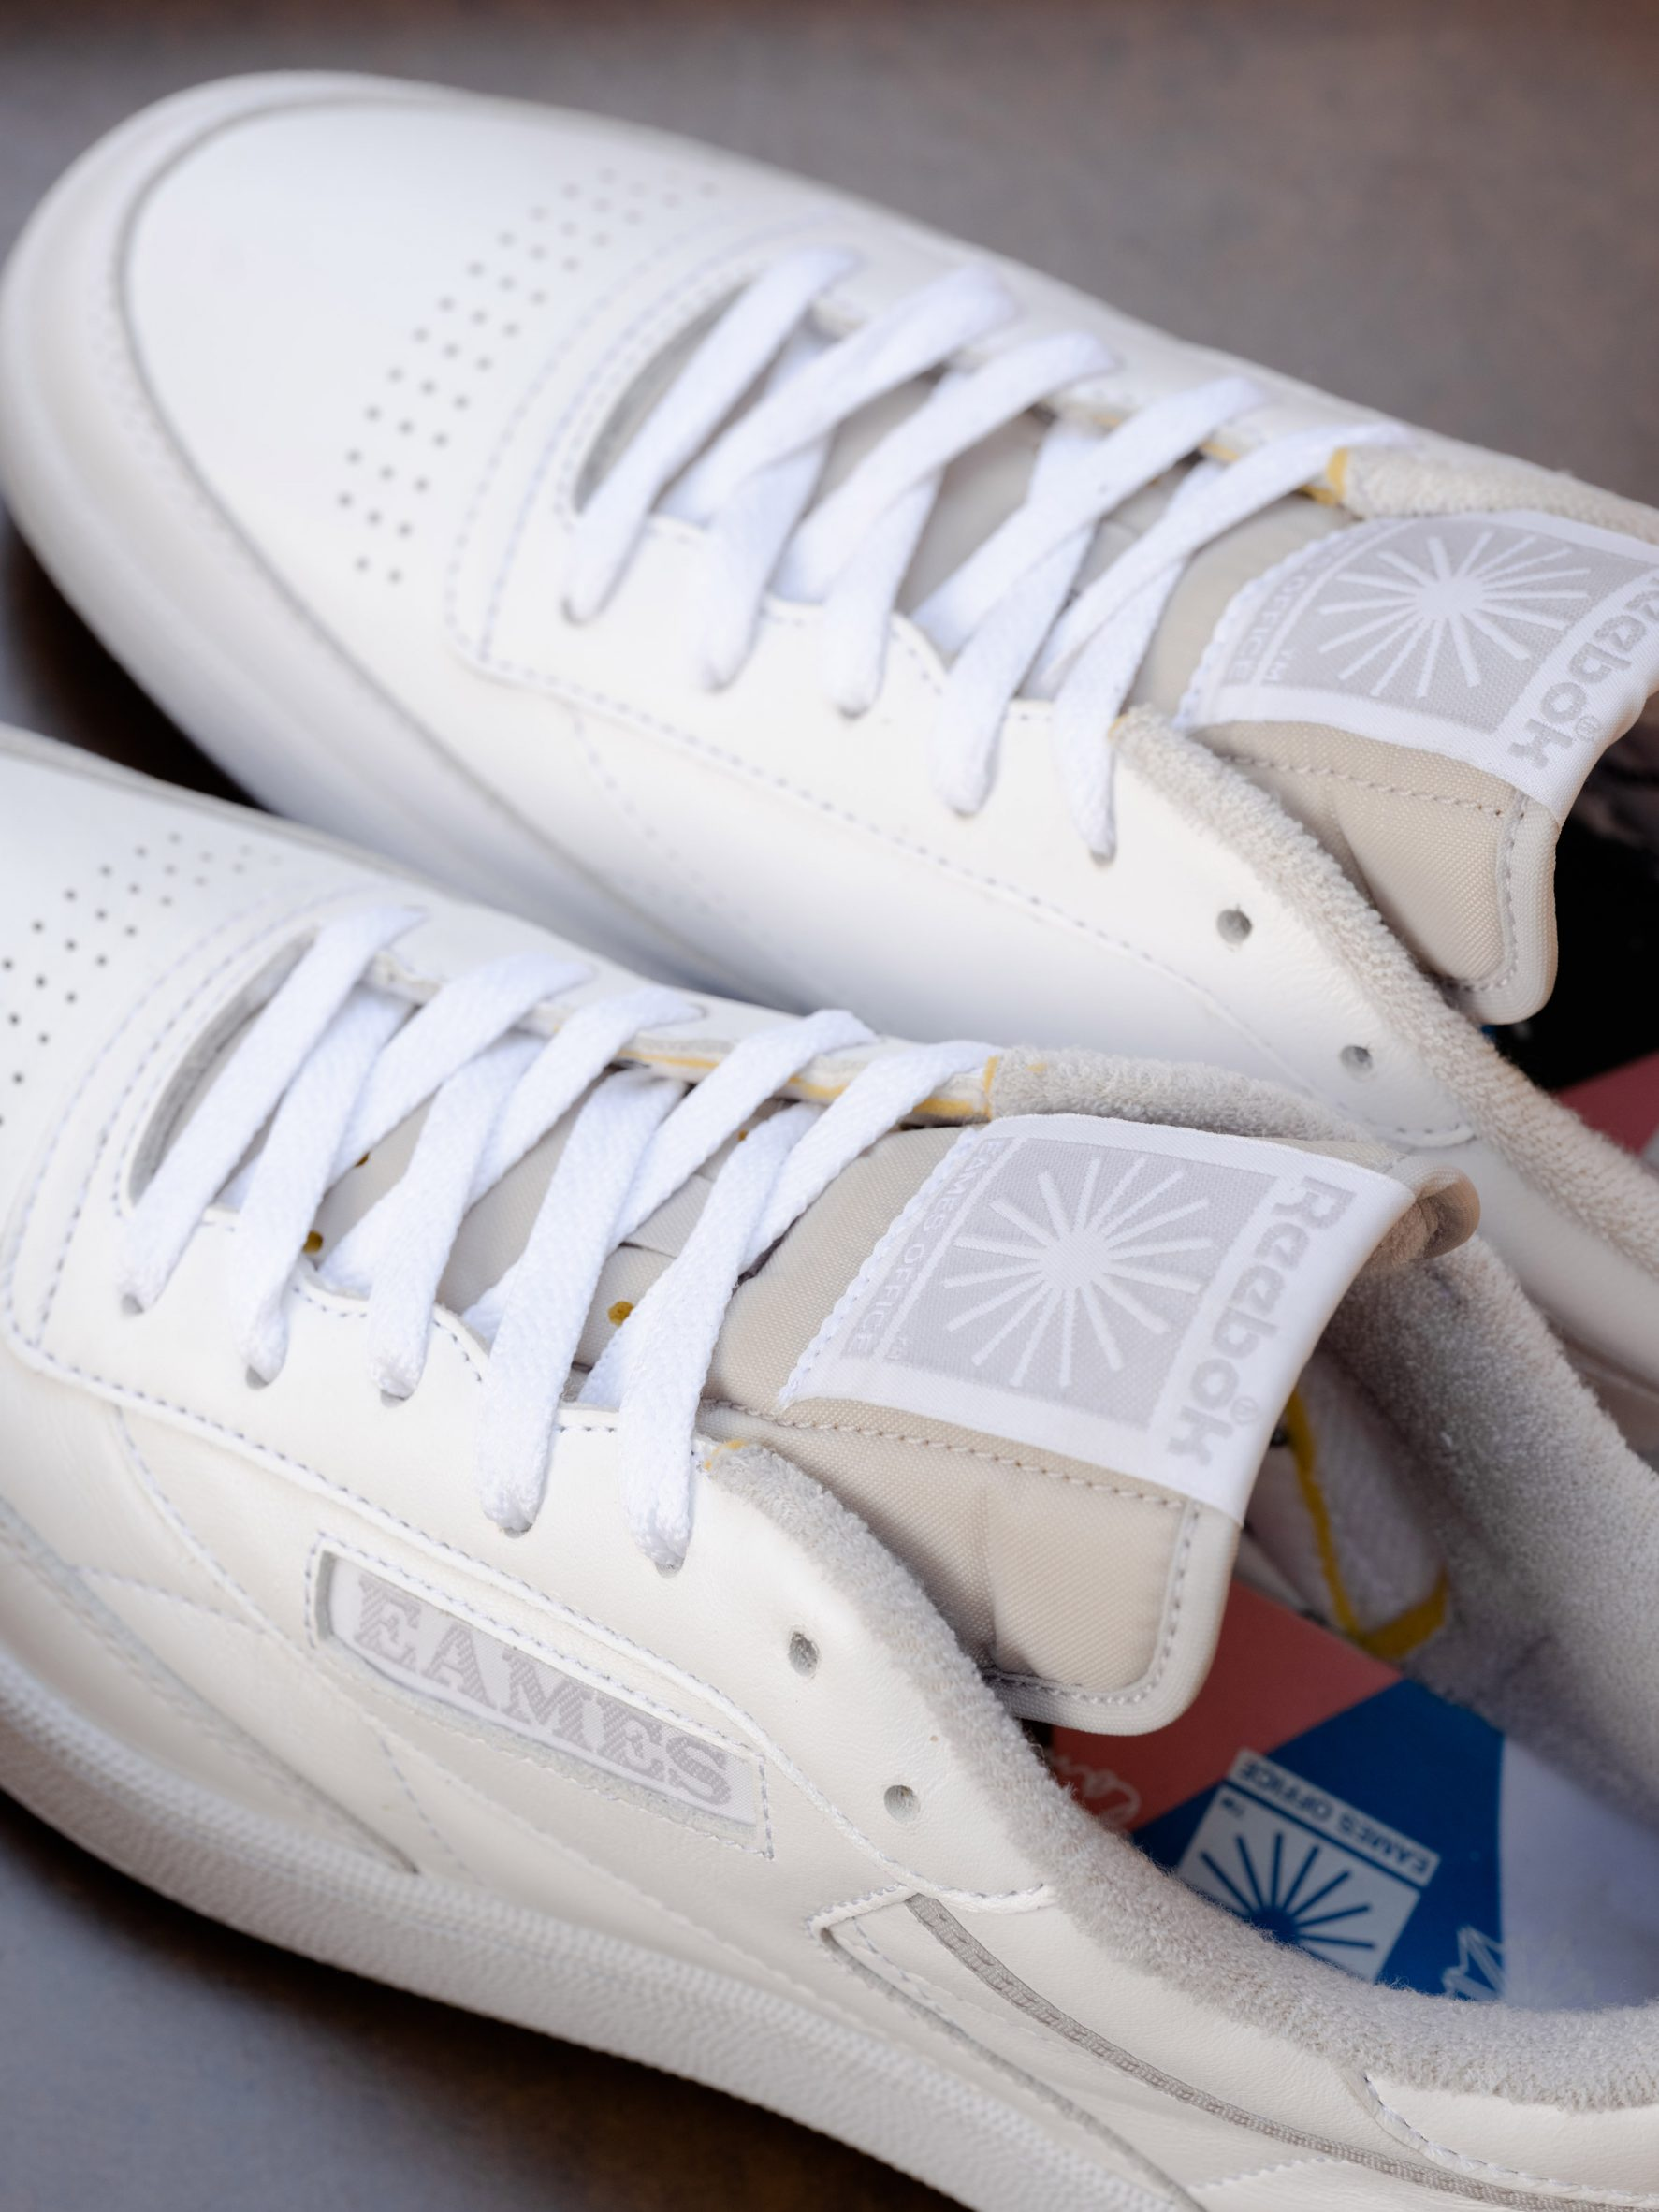 A pair of white Reebok x Eames trainers